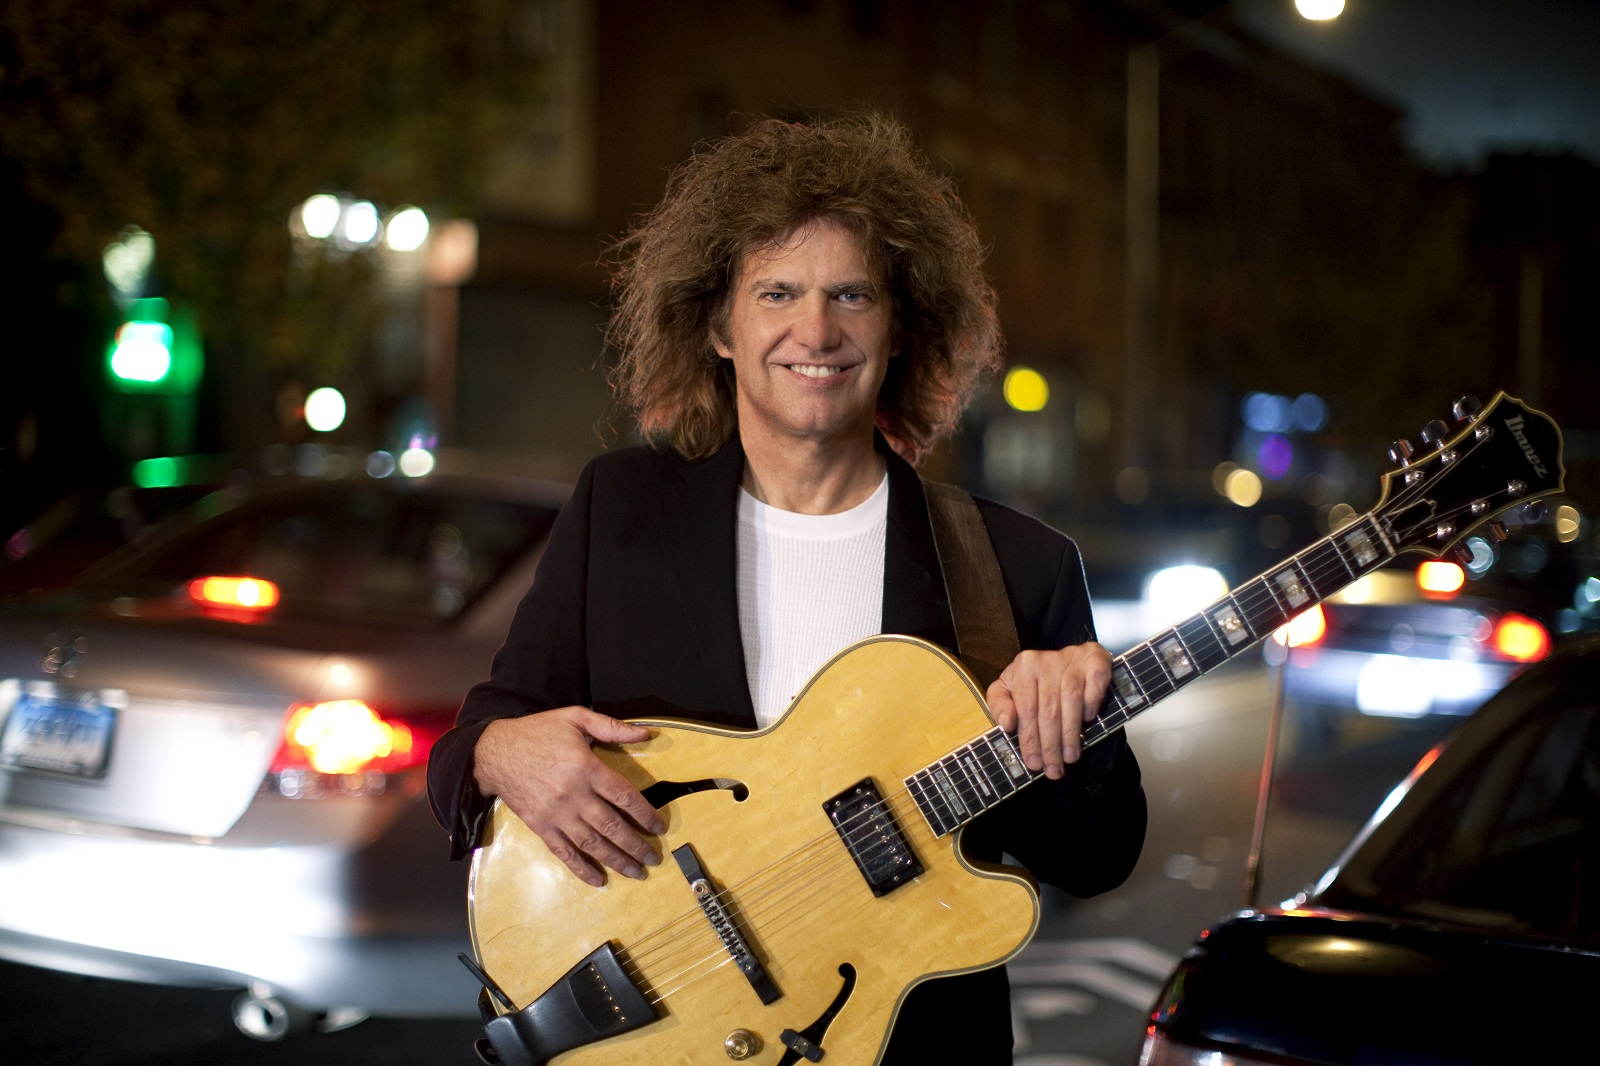 Pat Metheny reagenda sus dos conciertos en Chile para fines de 2021